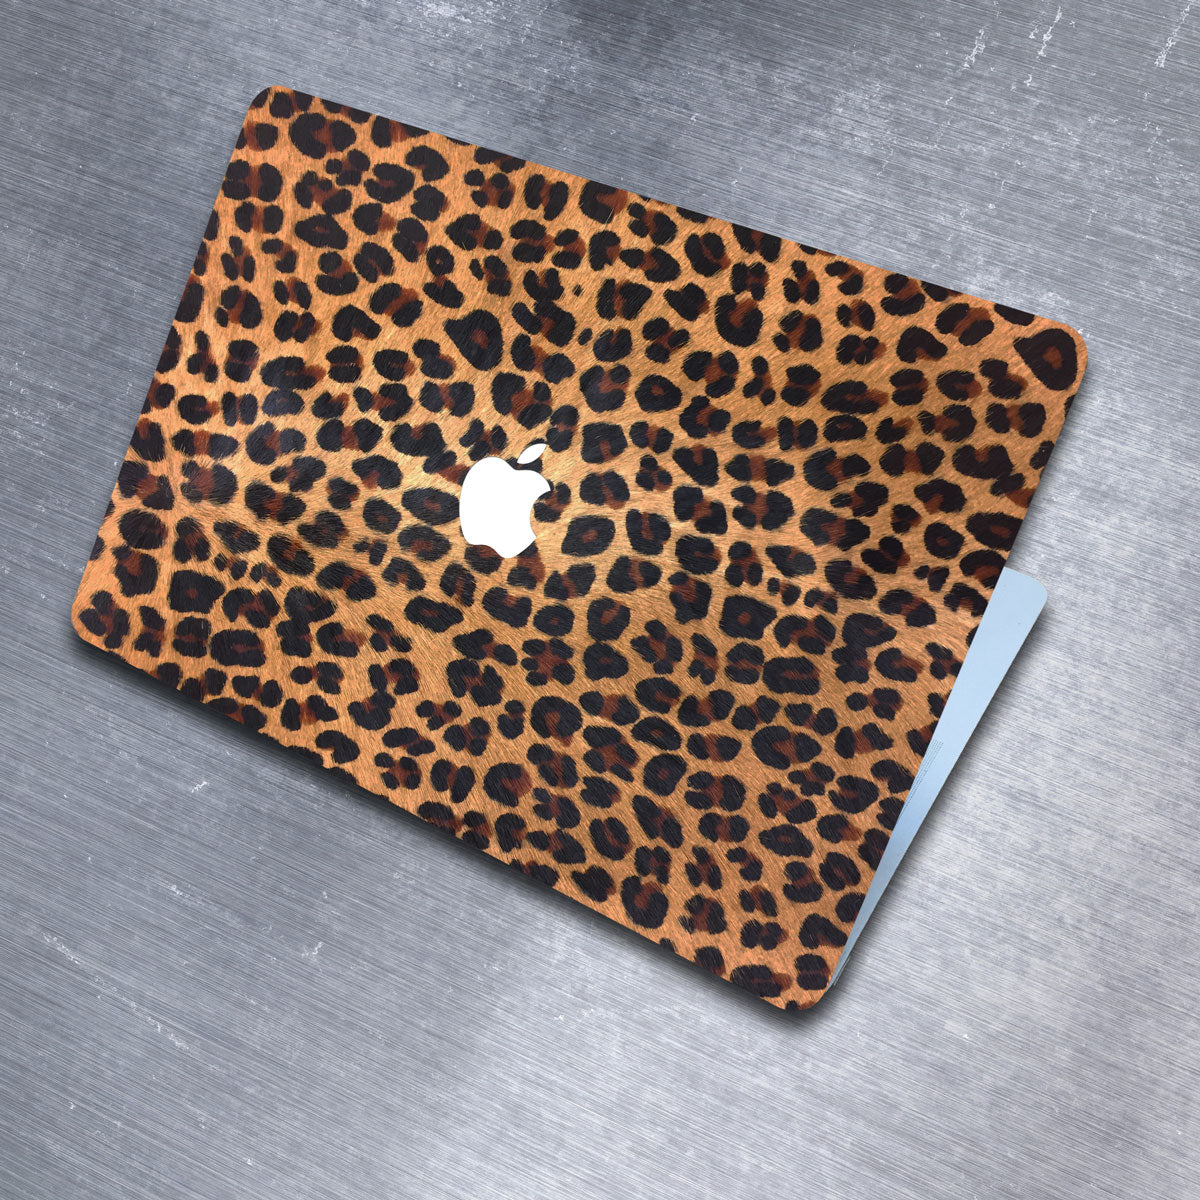 Leopard Print Pony Hair MacBook Leather Cover